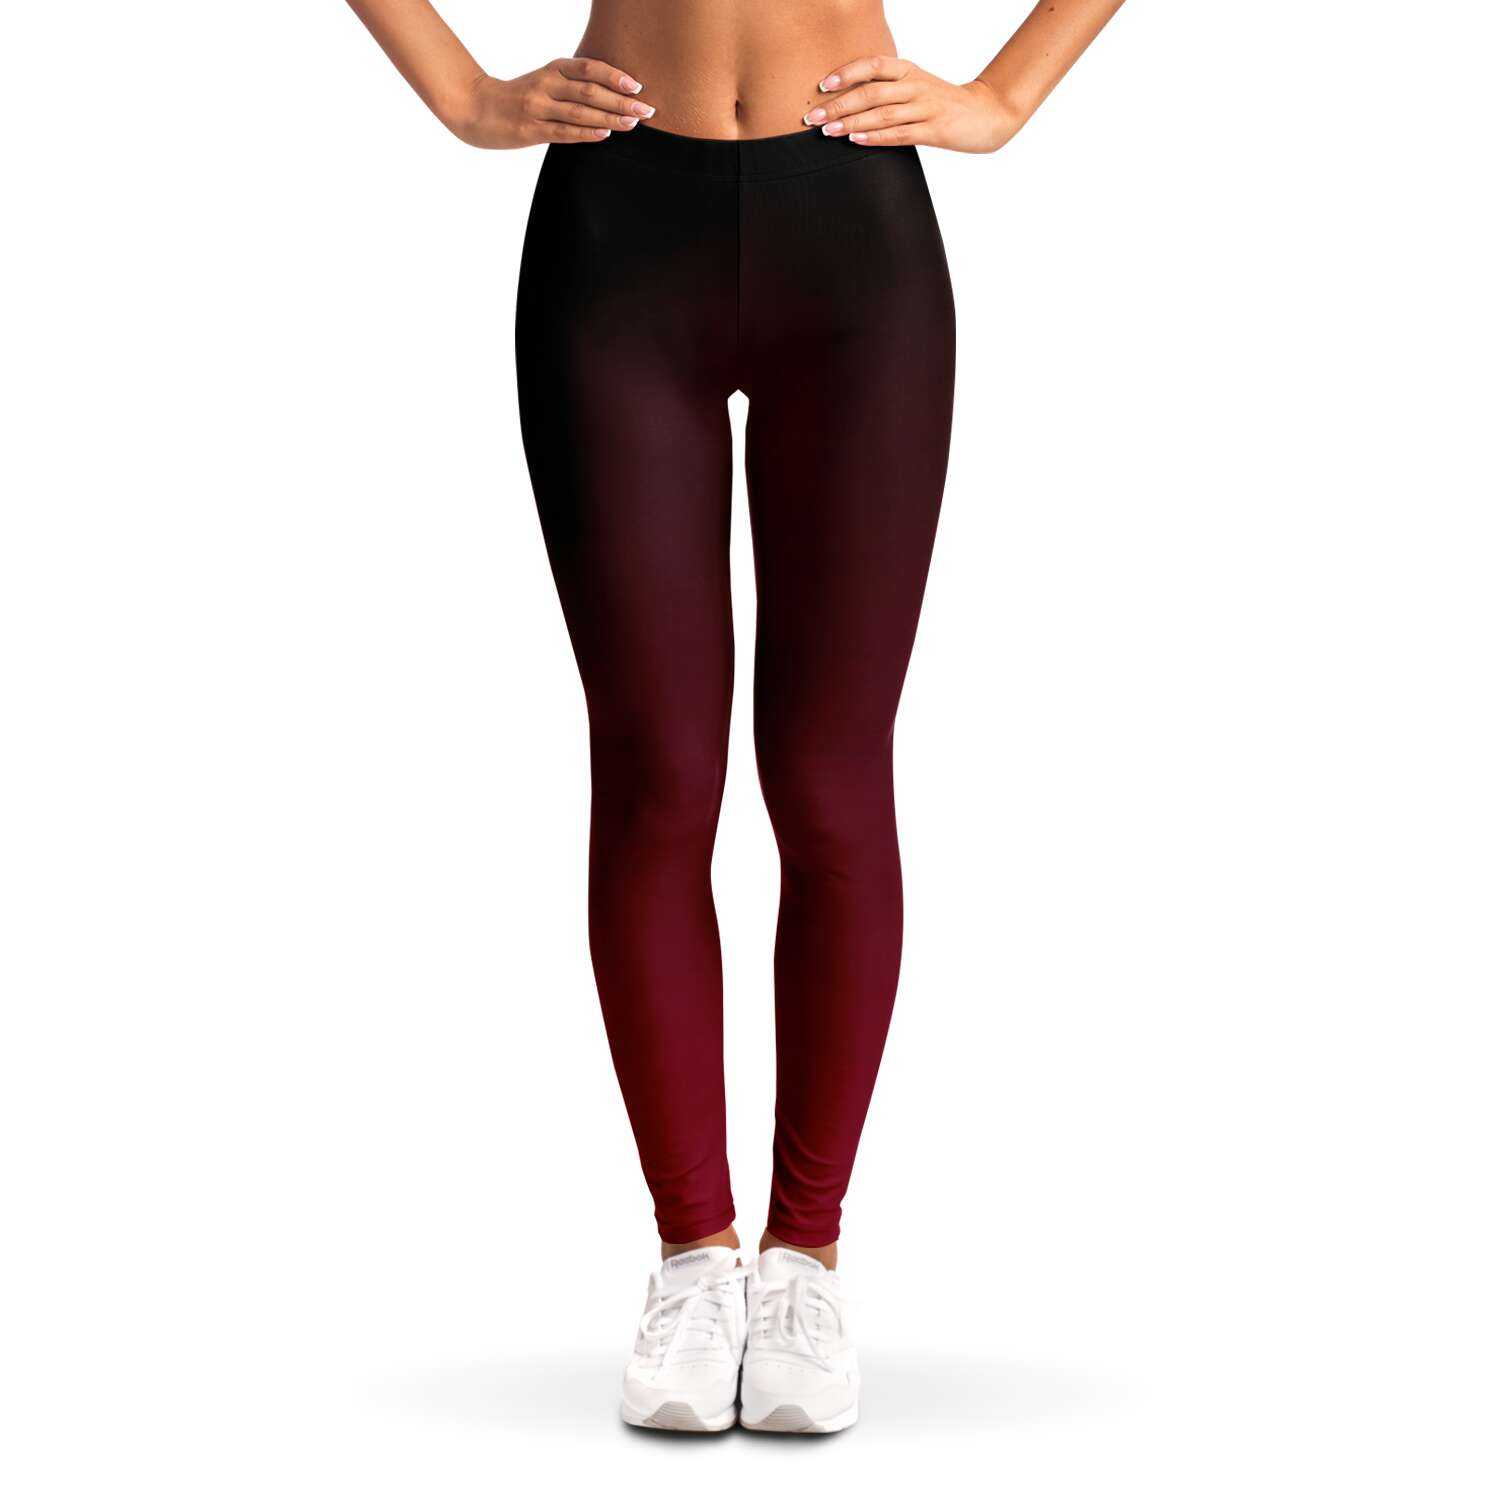 Black to Red Ombre Leggings